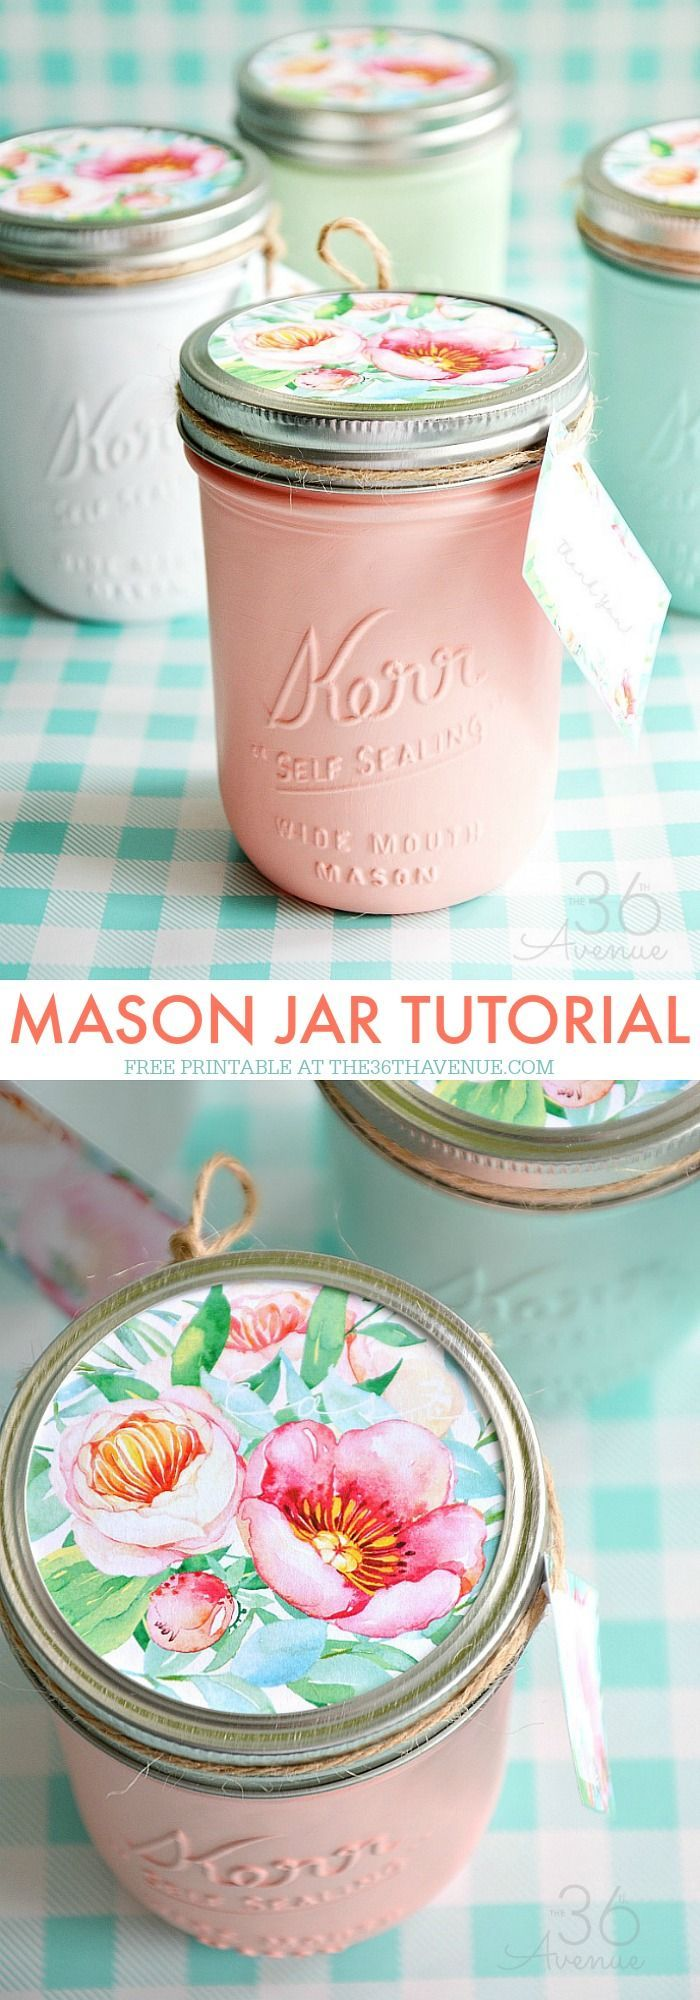 Mason jars handmade gift idea birthday gifts jar and easter mason jars and handmade gift idea perfect for mothers day easter birthday gifts negle Image collections